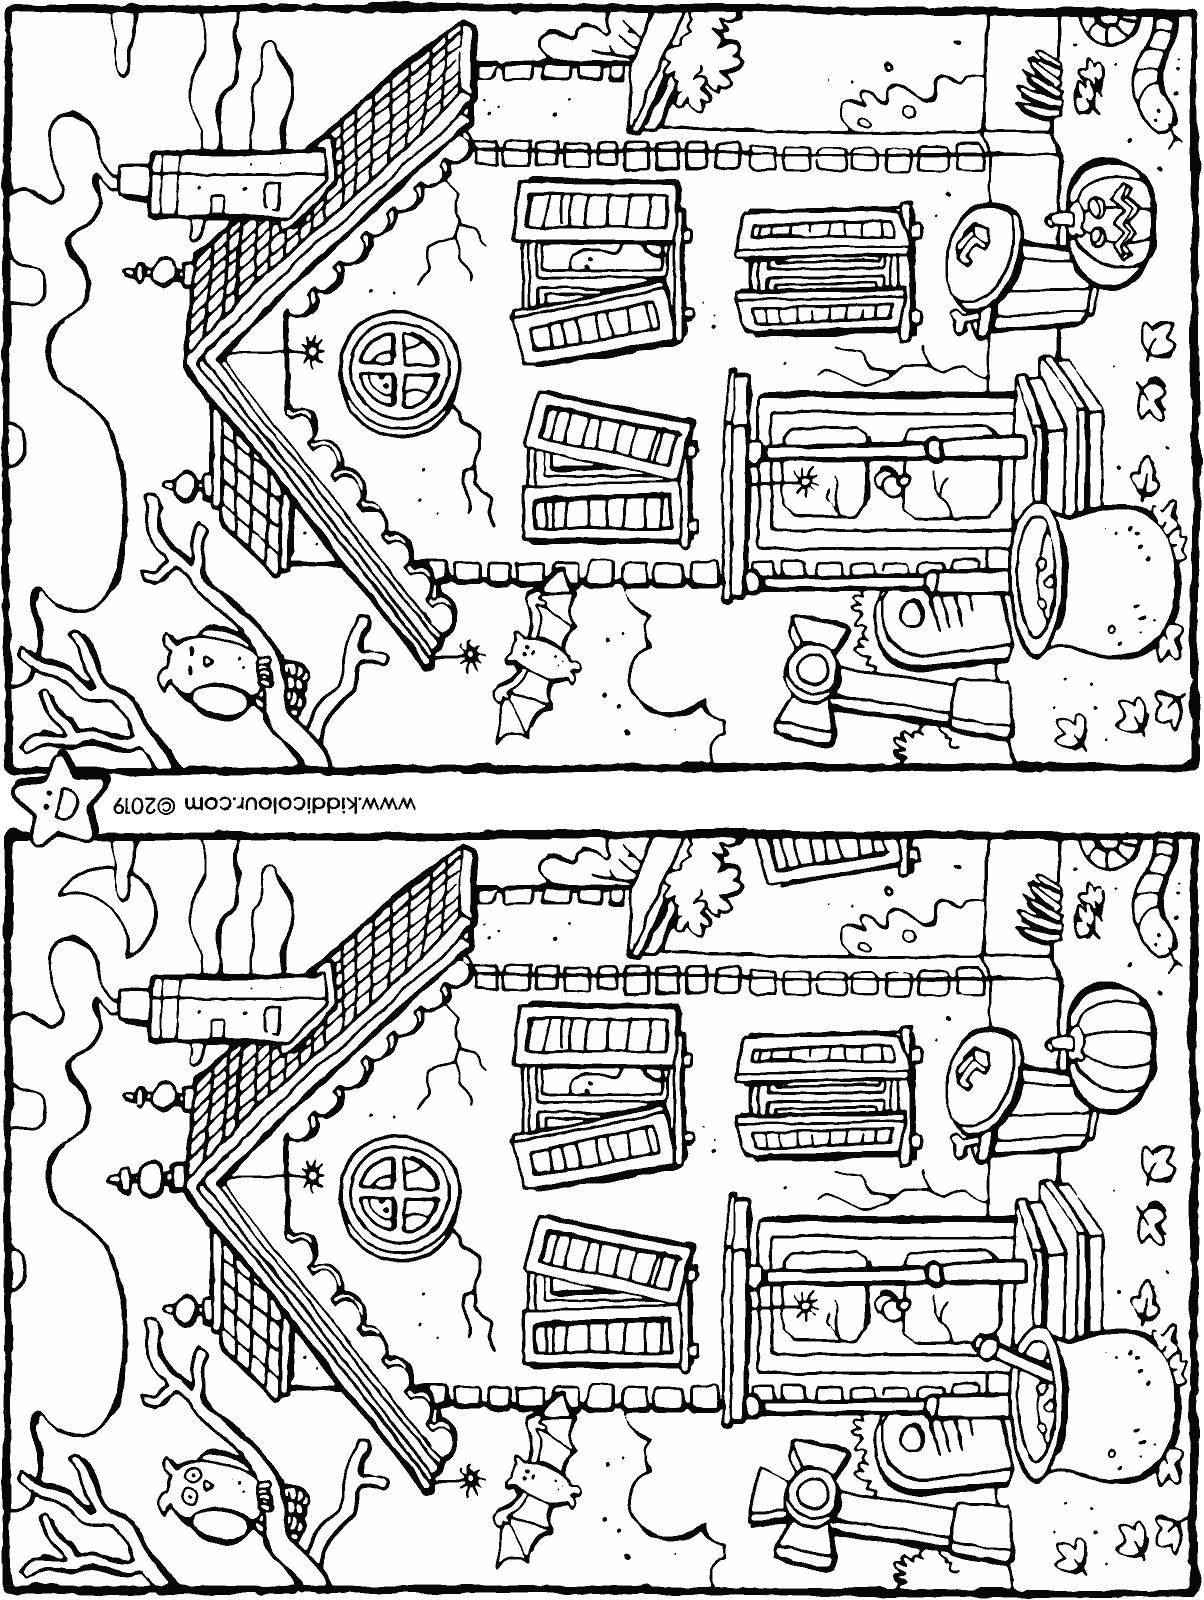 Halloween – spot the 7 differences - colouring page drawing picture 01H